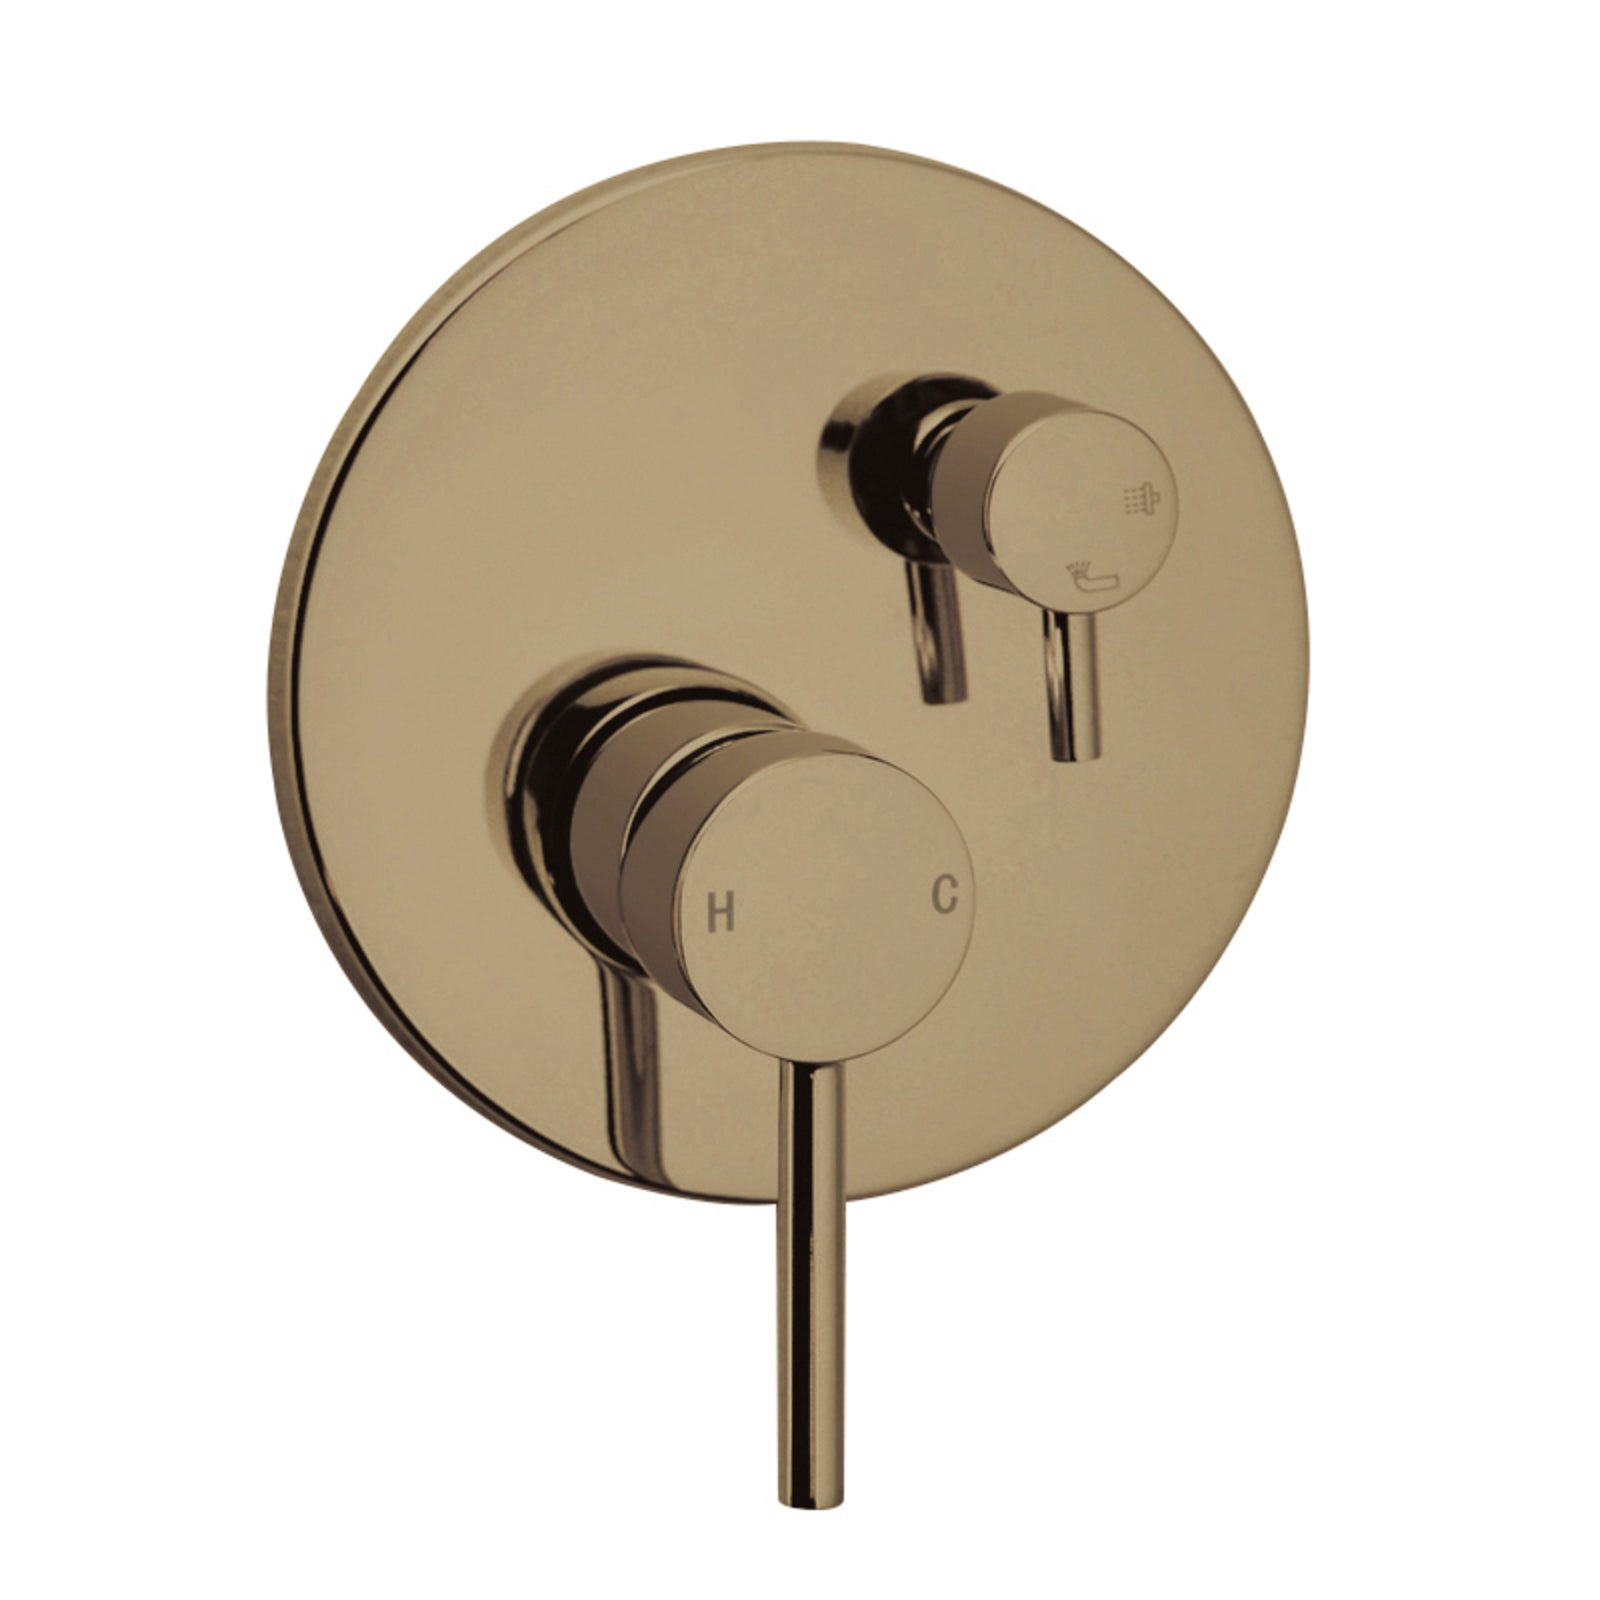 Pentro Brushed Yellow Gold Round Wall Mixer Tap with Diverter